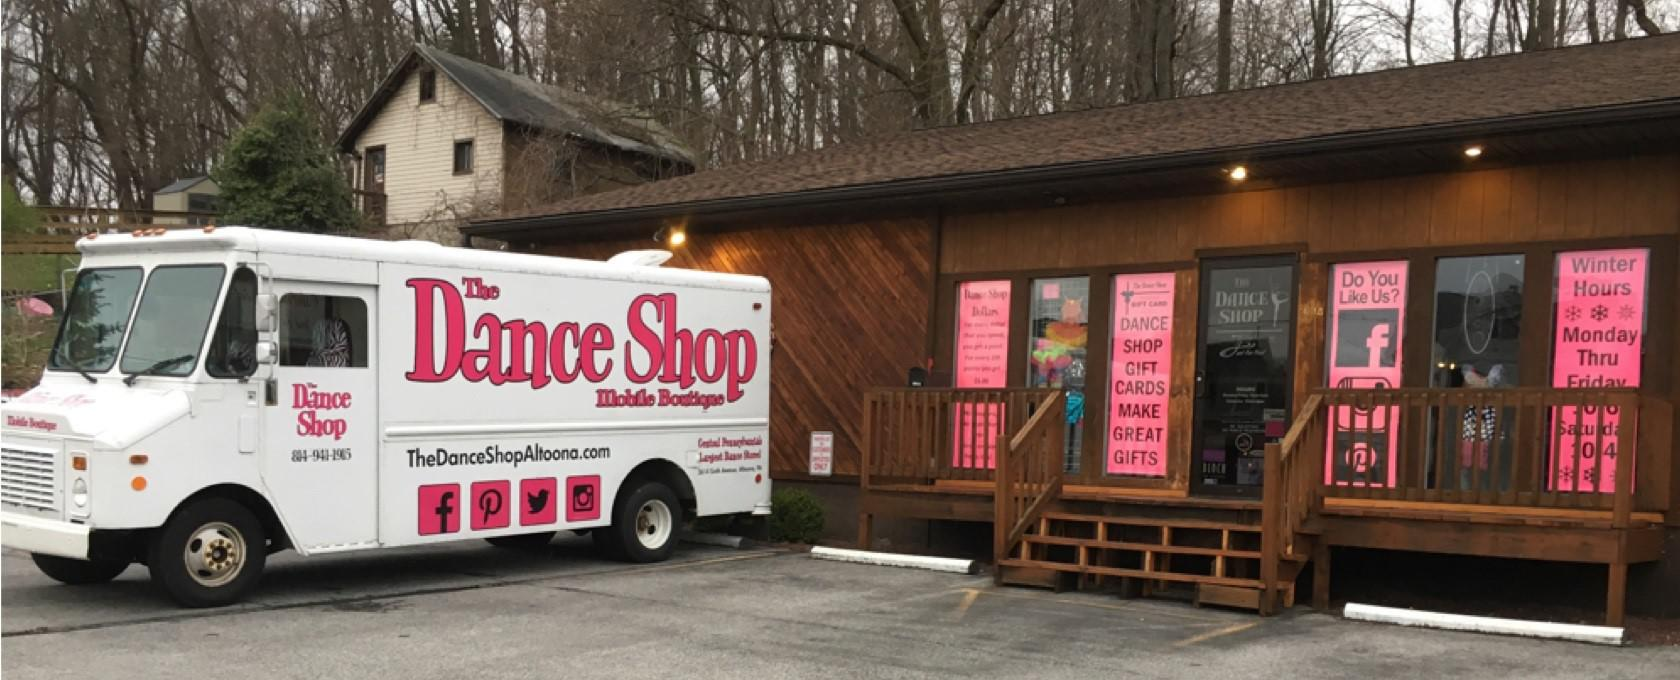 The Dance Shop is located at 3614 6th Ave. Altoona, PA, 16602.